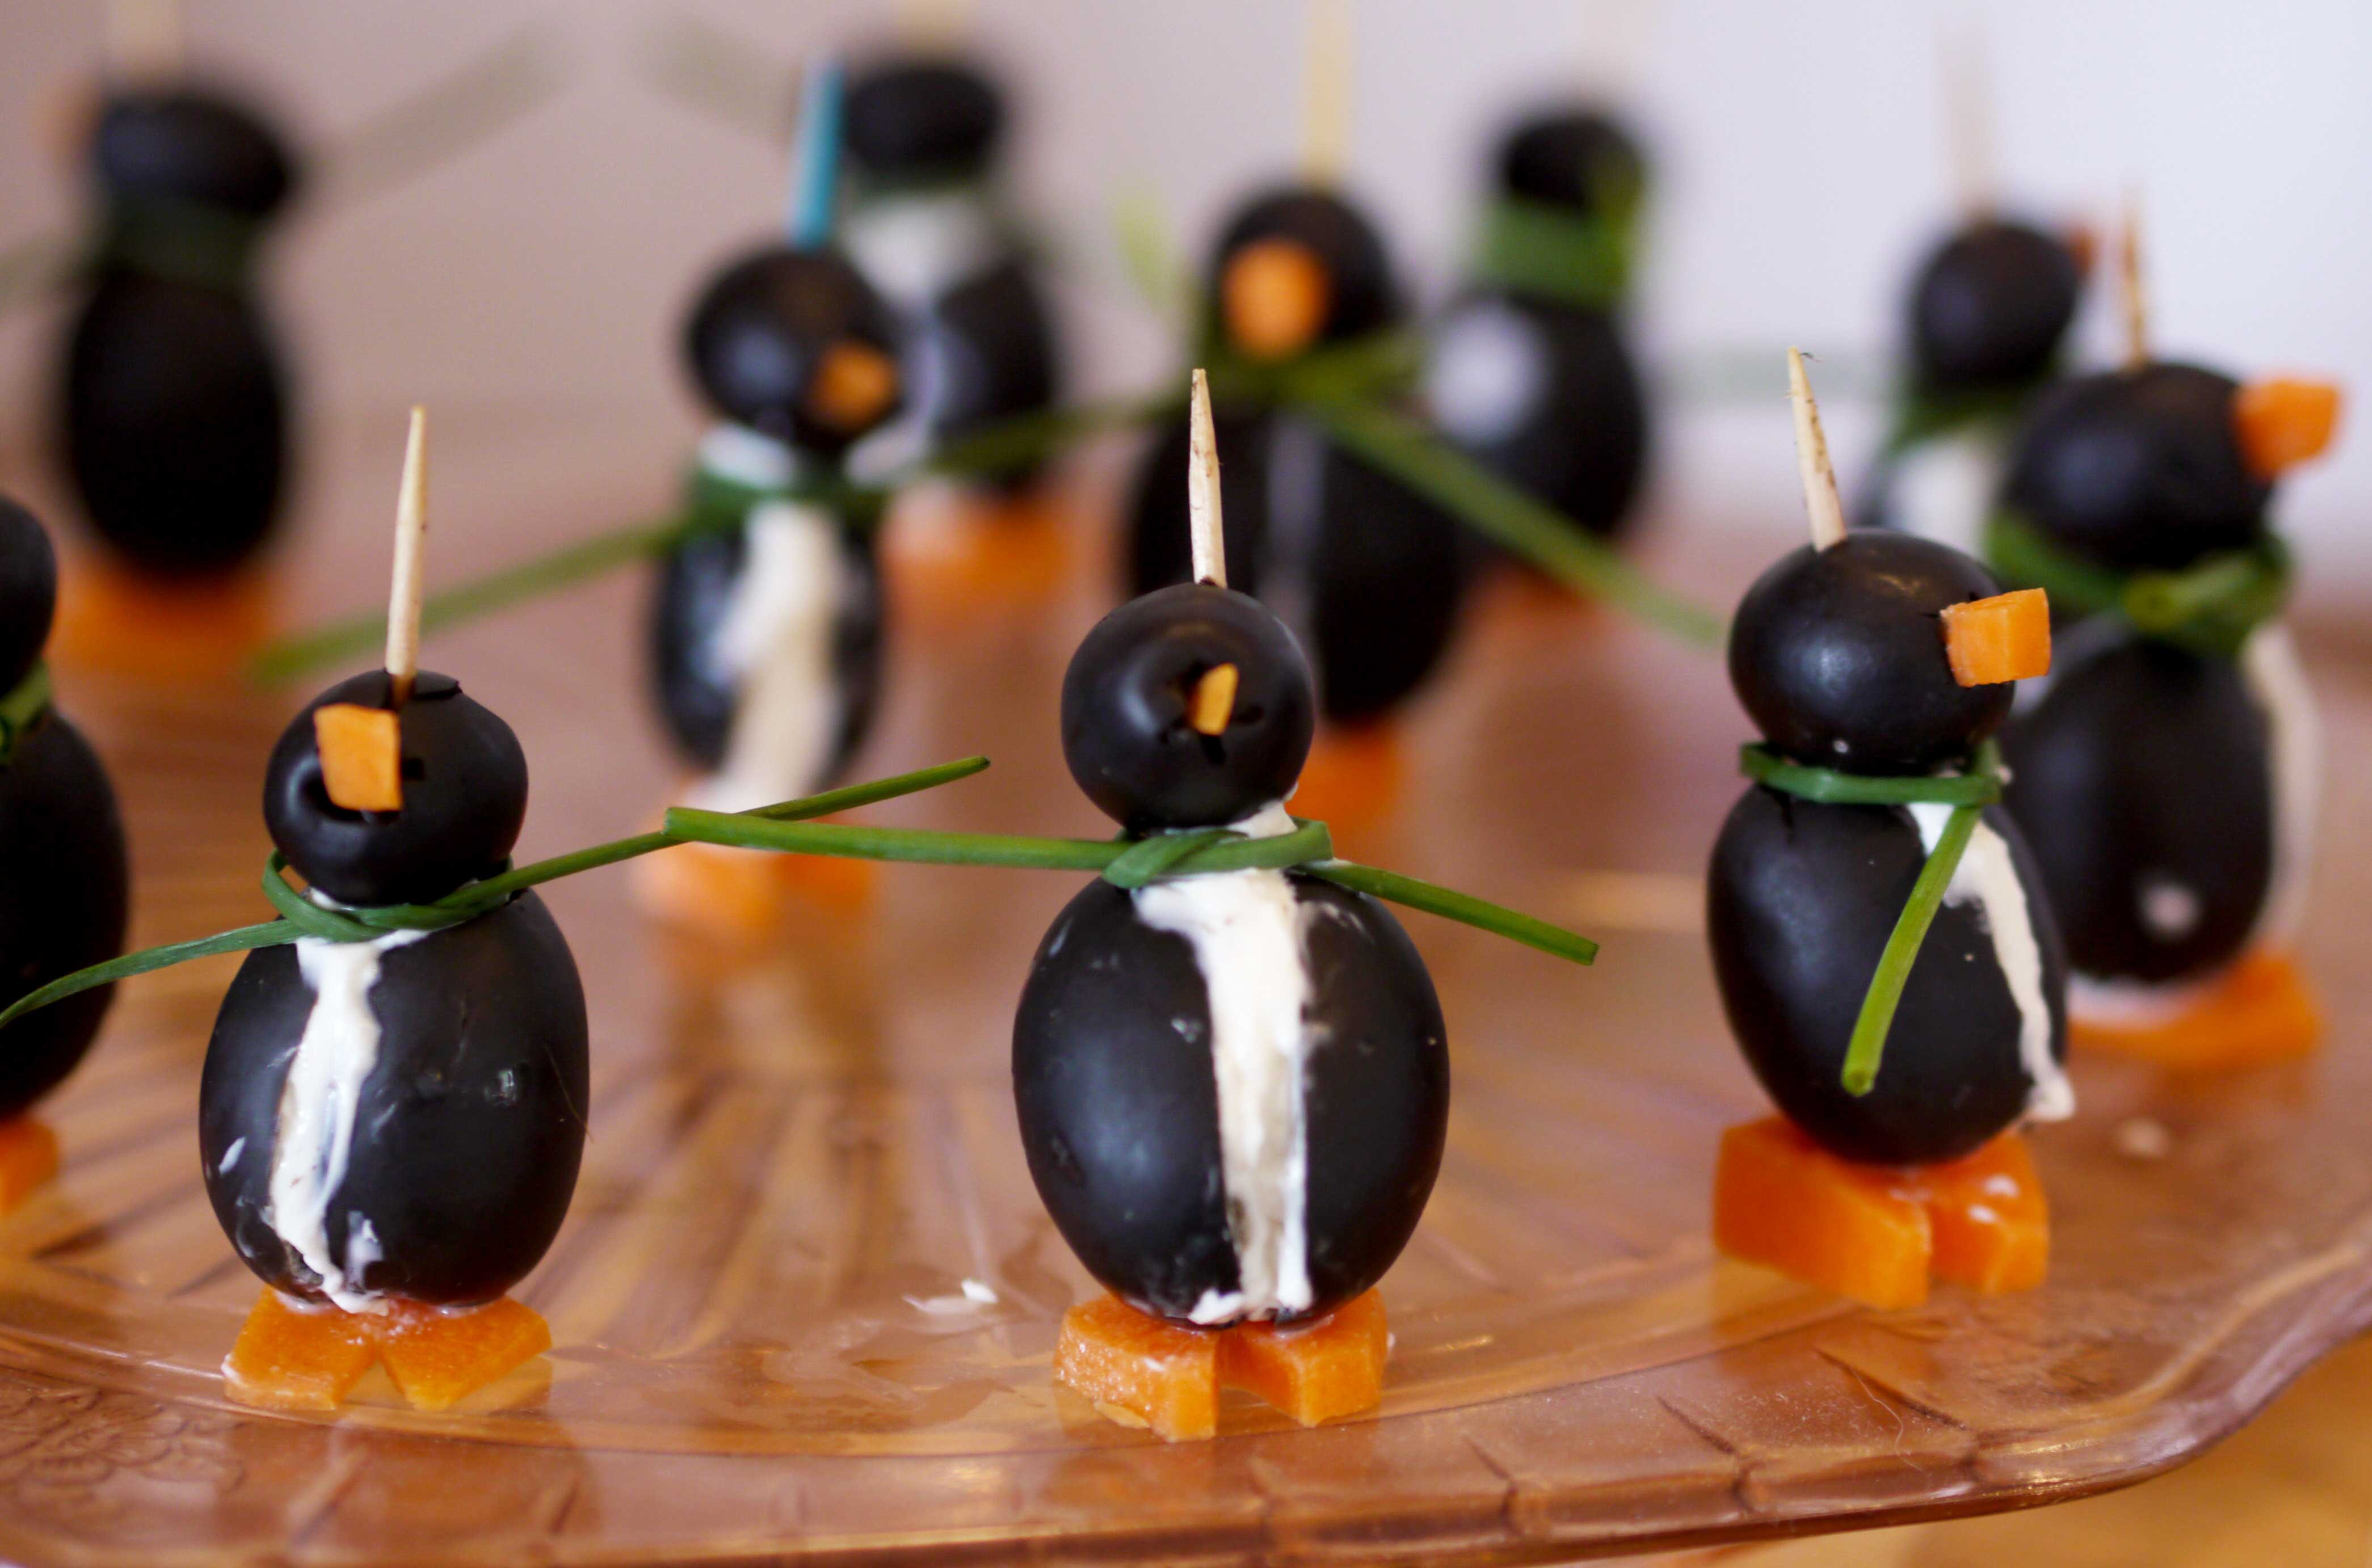 Penguins made out of olives